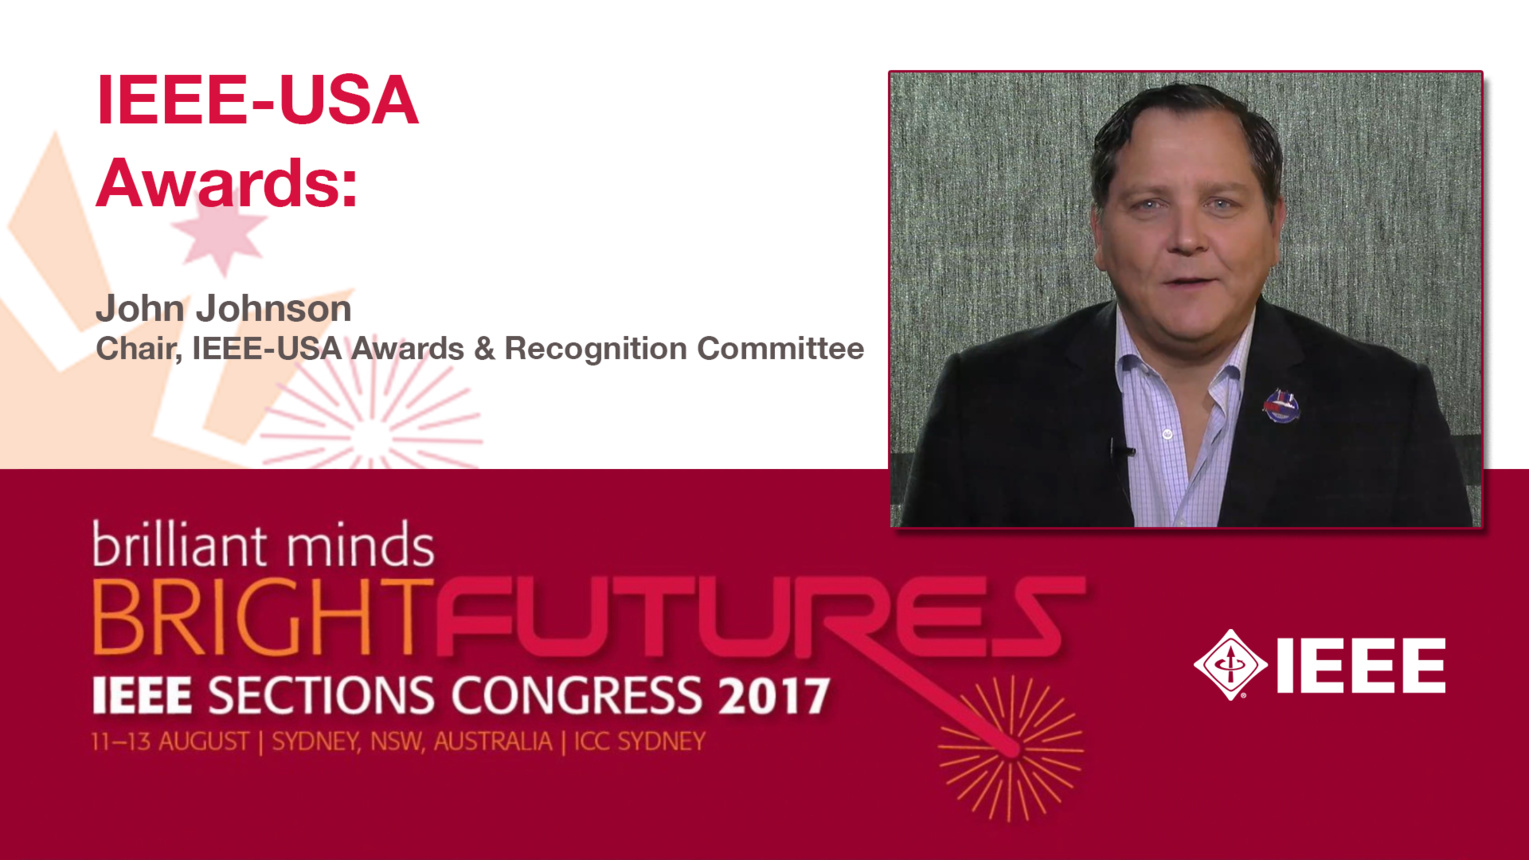 John Johnson: IEEE-USA Awards - Studio Tech Talks: Sections Congress 2017